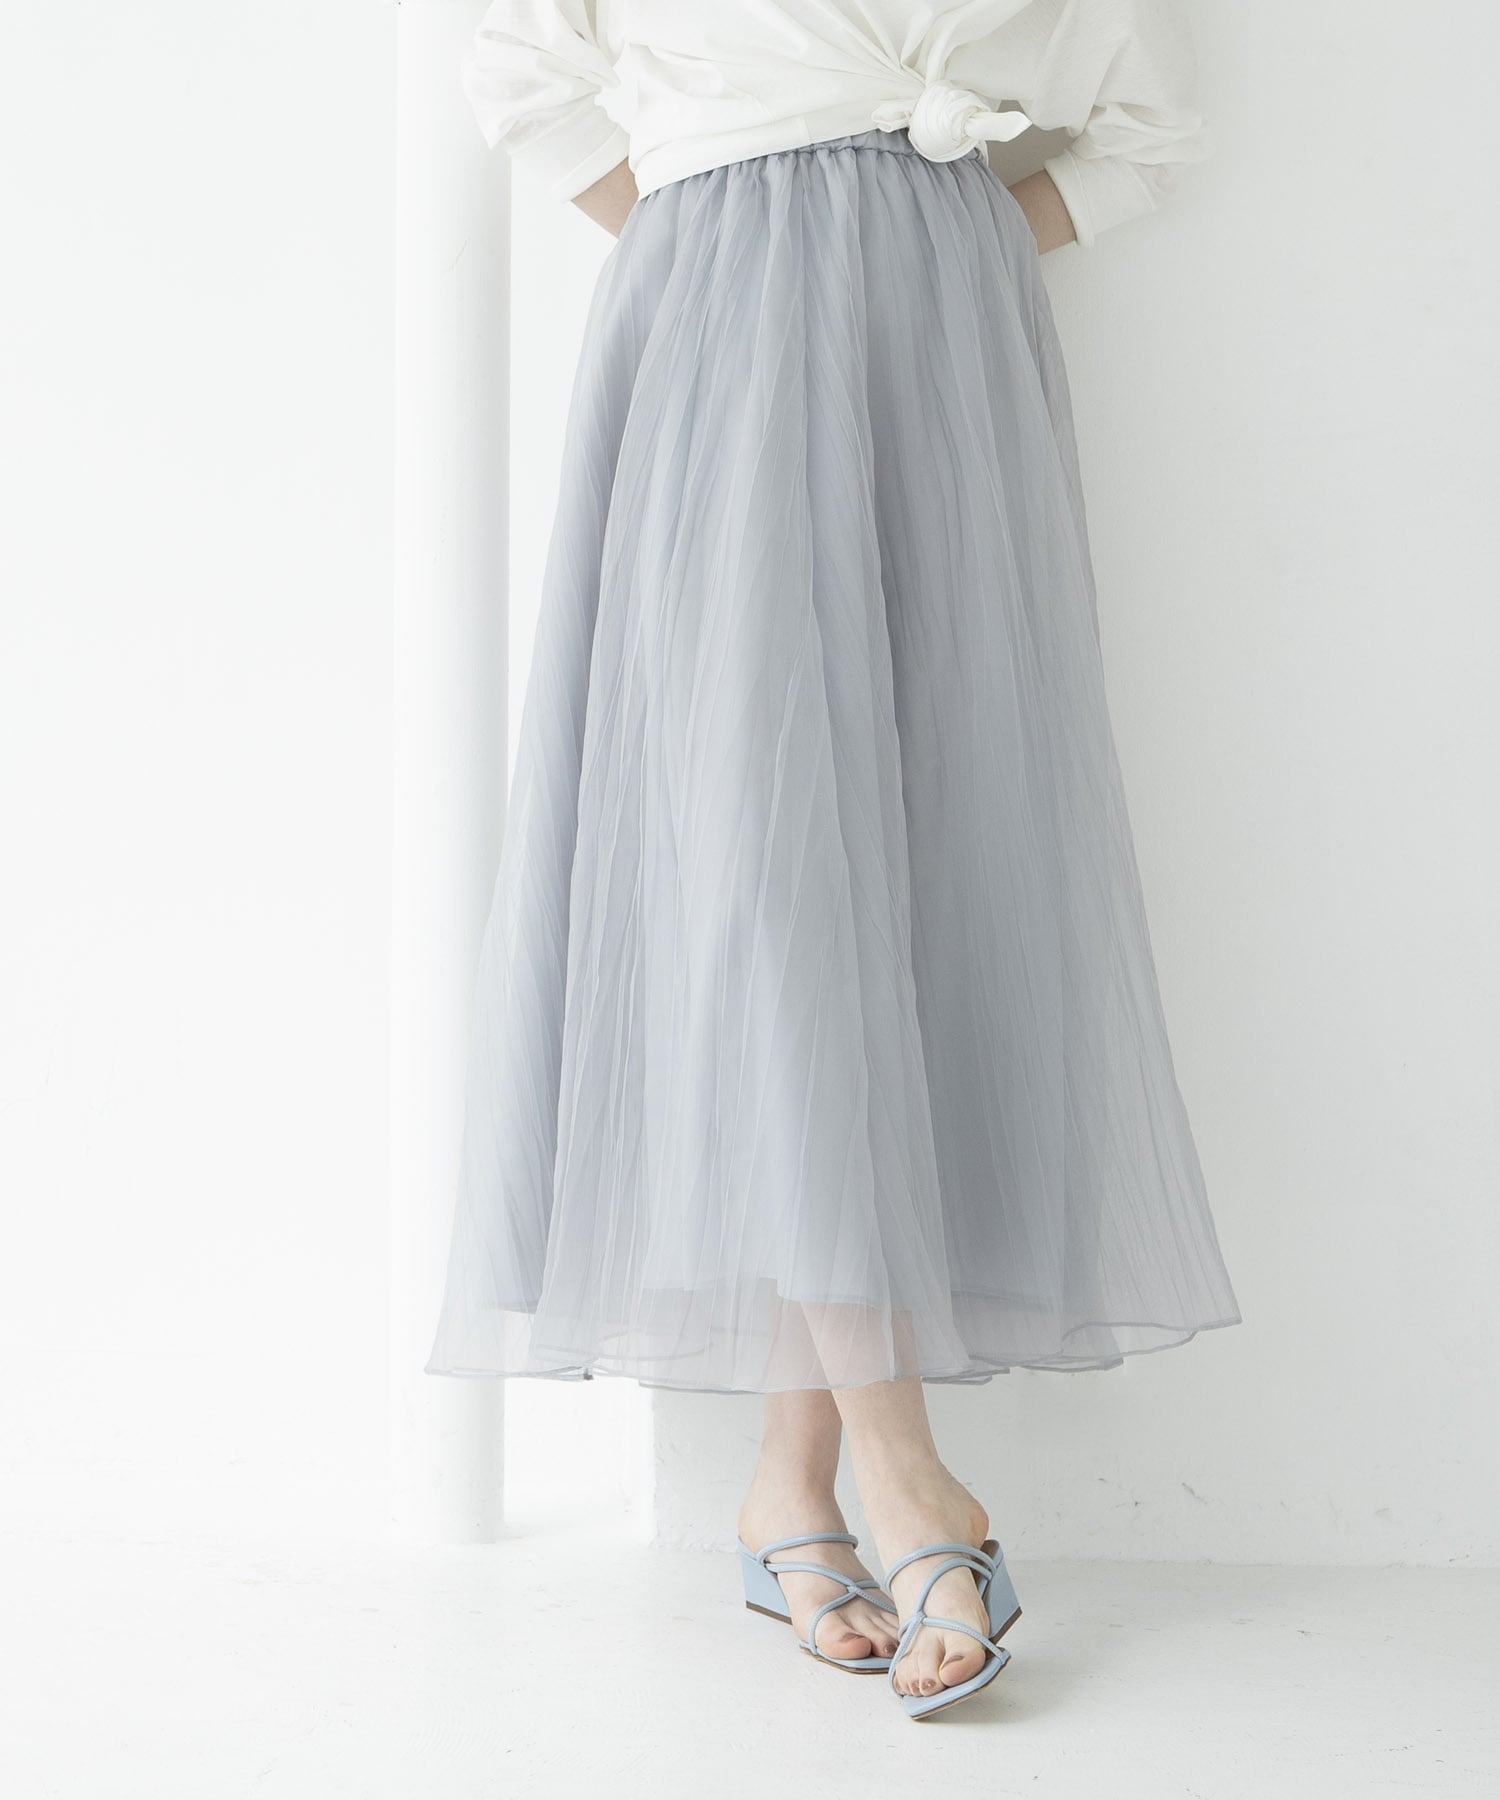 washer organdy long skirt